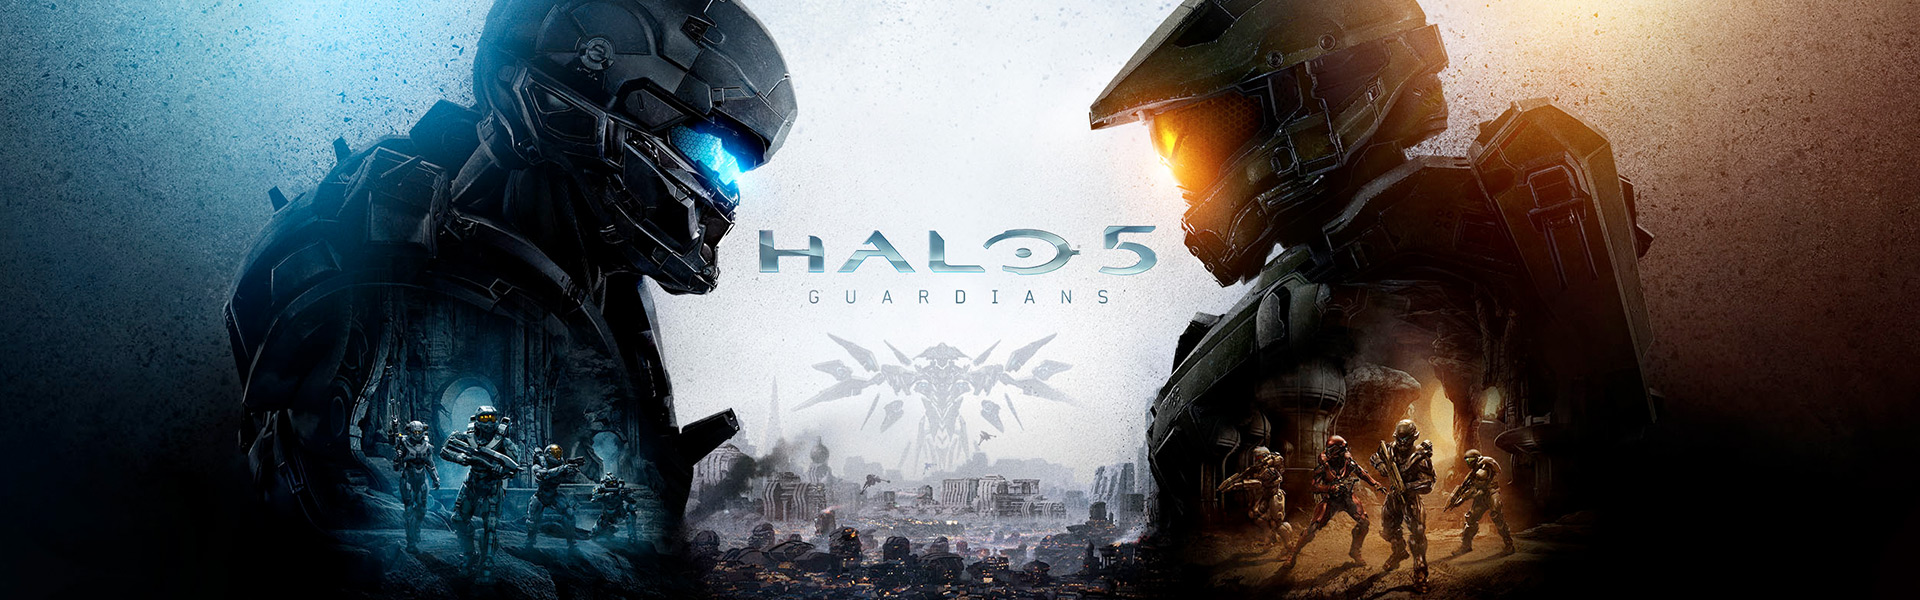 Halo 5 guardians for xbox one xbox halo 5 guardians two spartans facing each other voltagebd Choice Image